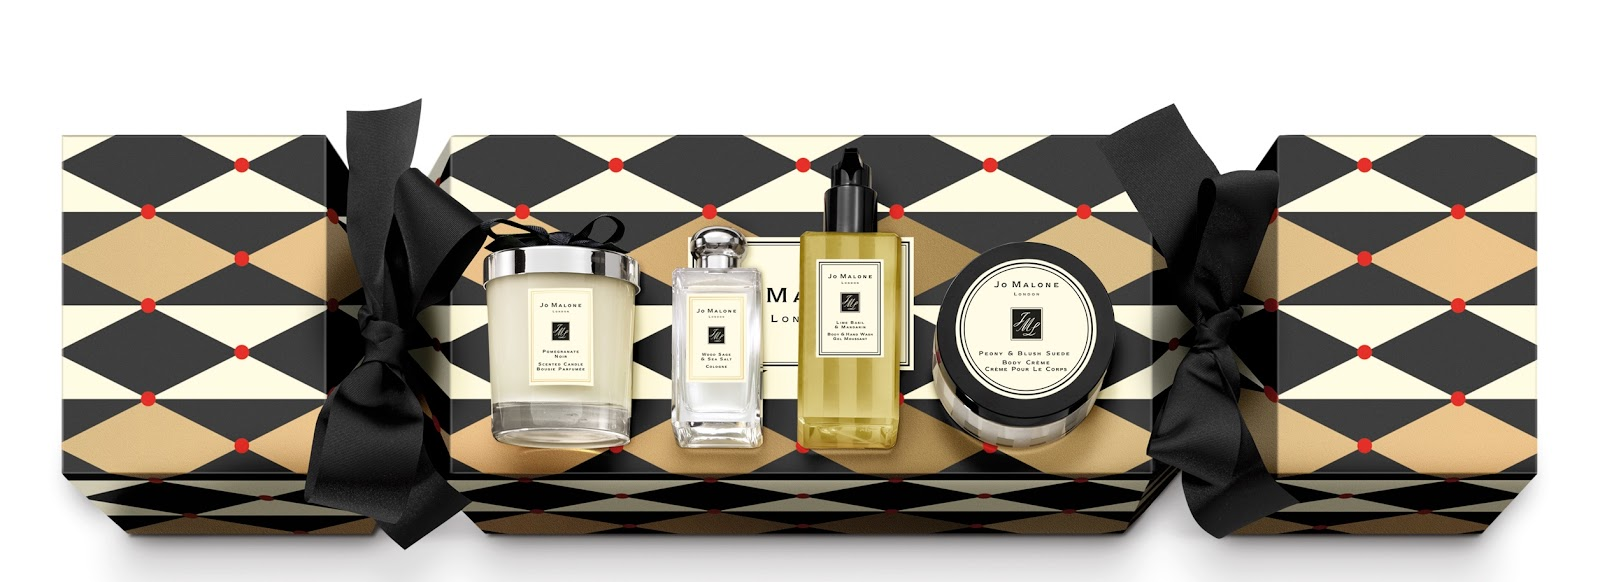 Why Not Opt For The Giant Version Which Is Ultimate Er Experience Includes A 100ml Cologne 175ml Body Crème 200g Candle